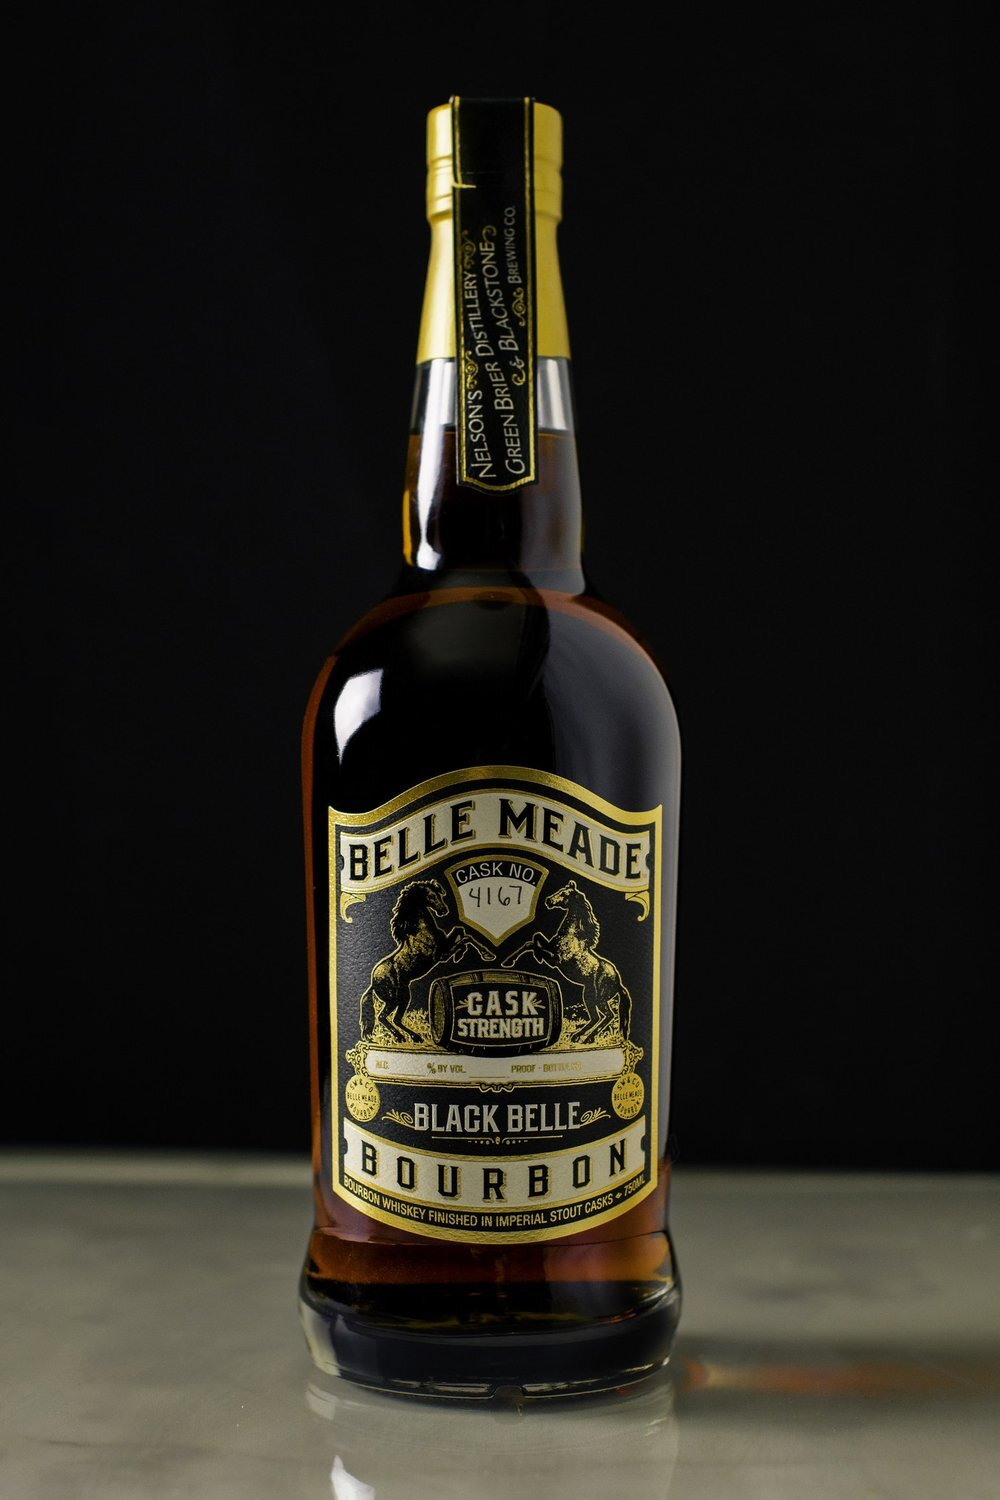 Belle Meade Black Belle Bourbon Cask Stregnth Barrel 45 95 proof